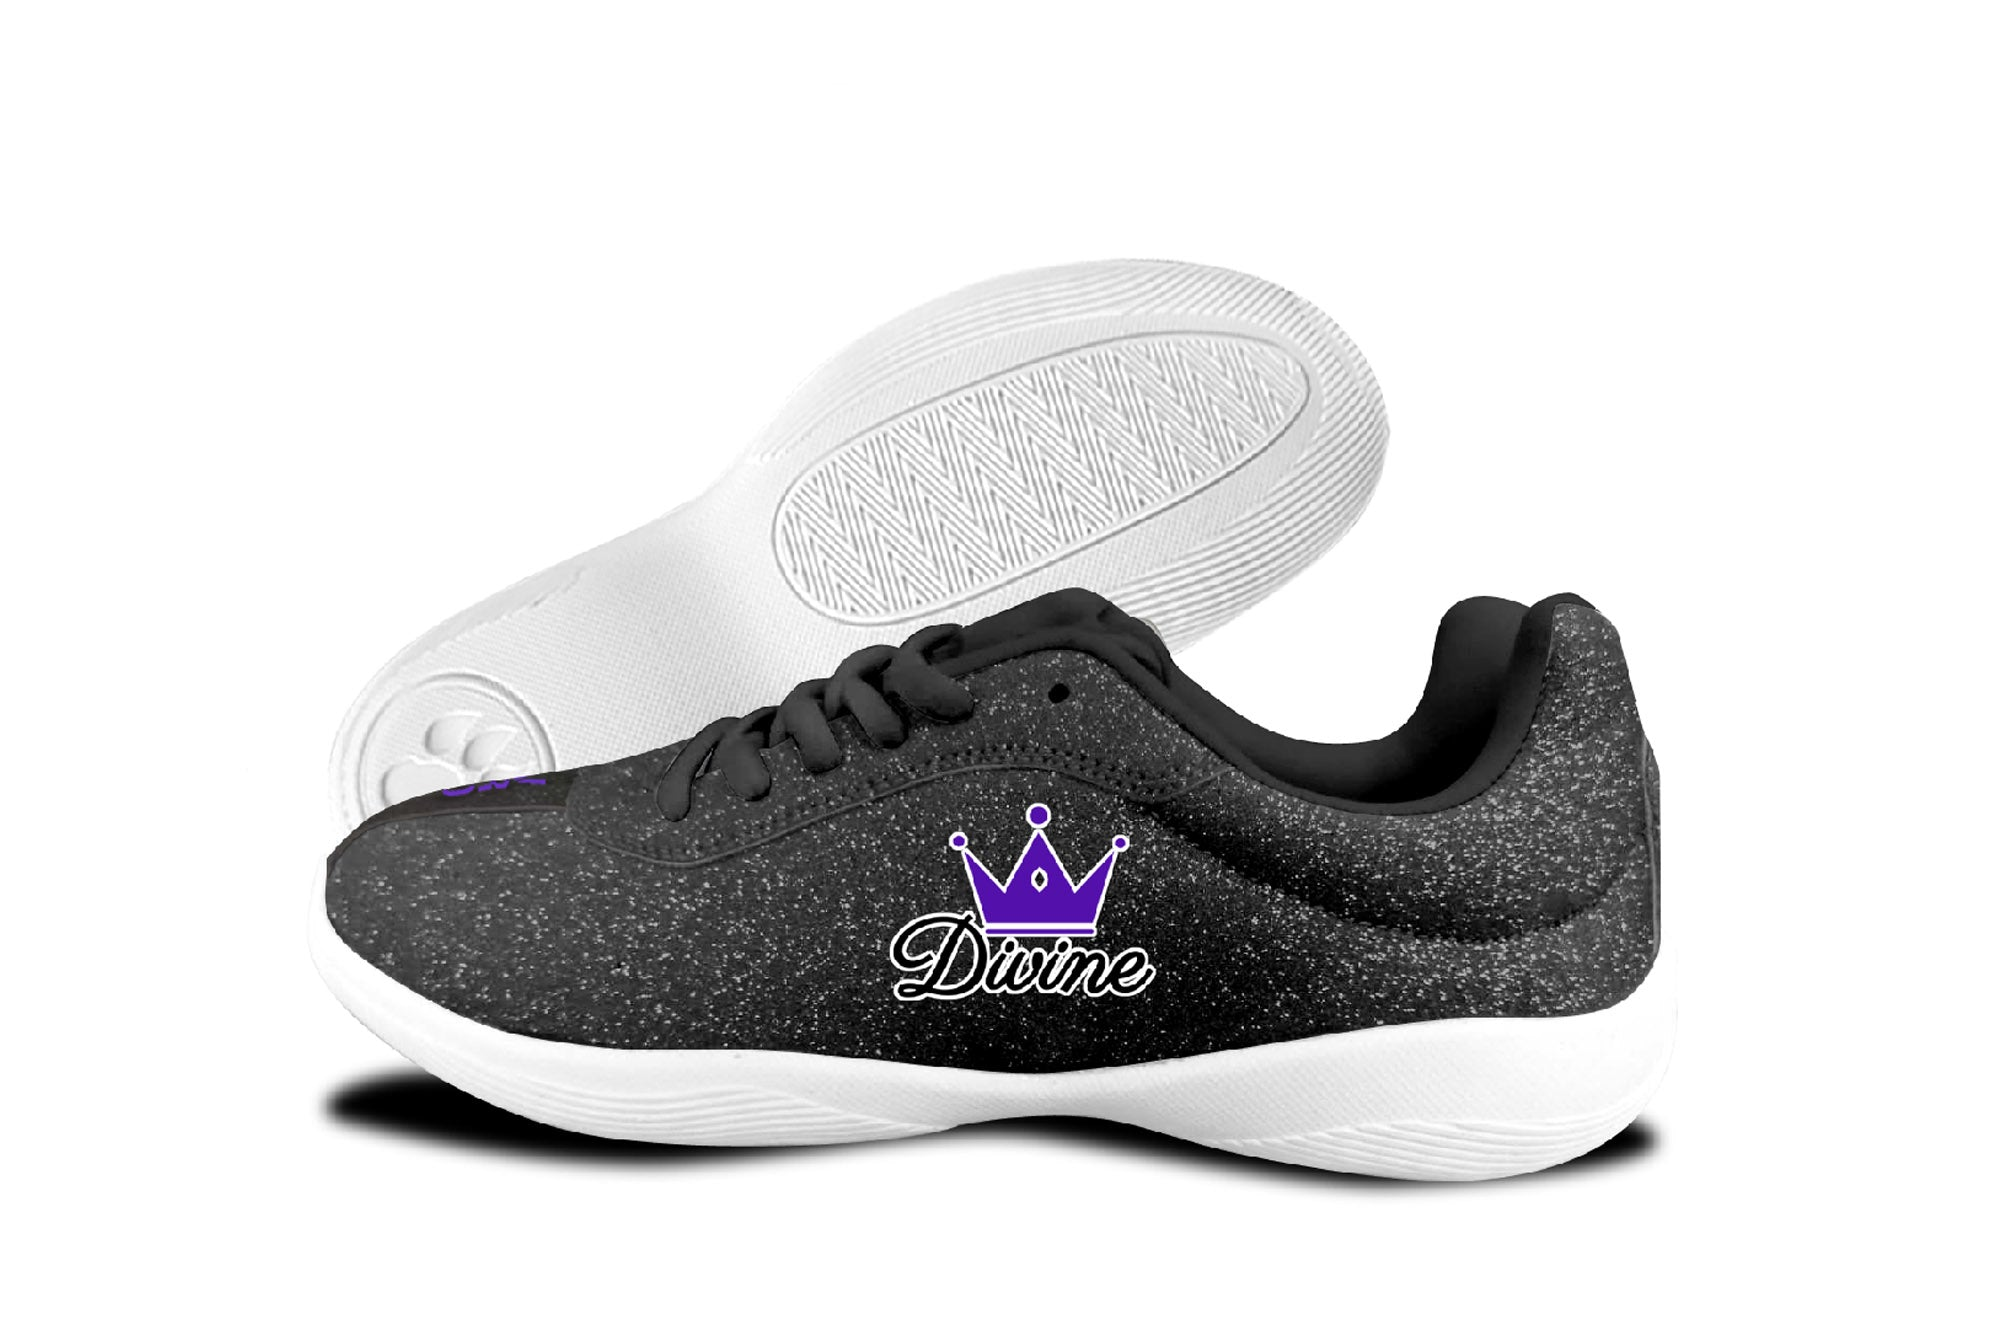 Custom Low Top V-Ro Shoes